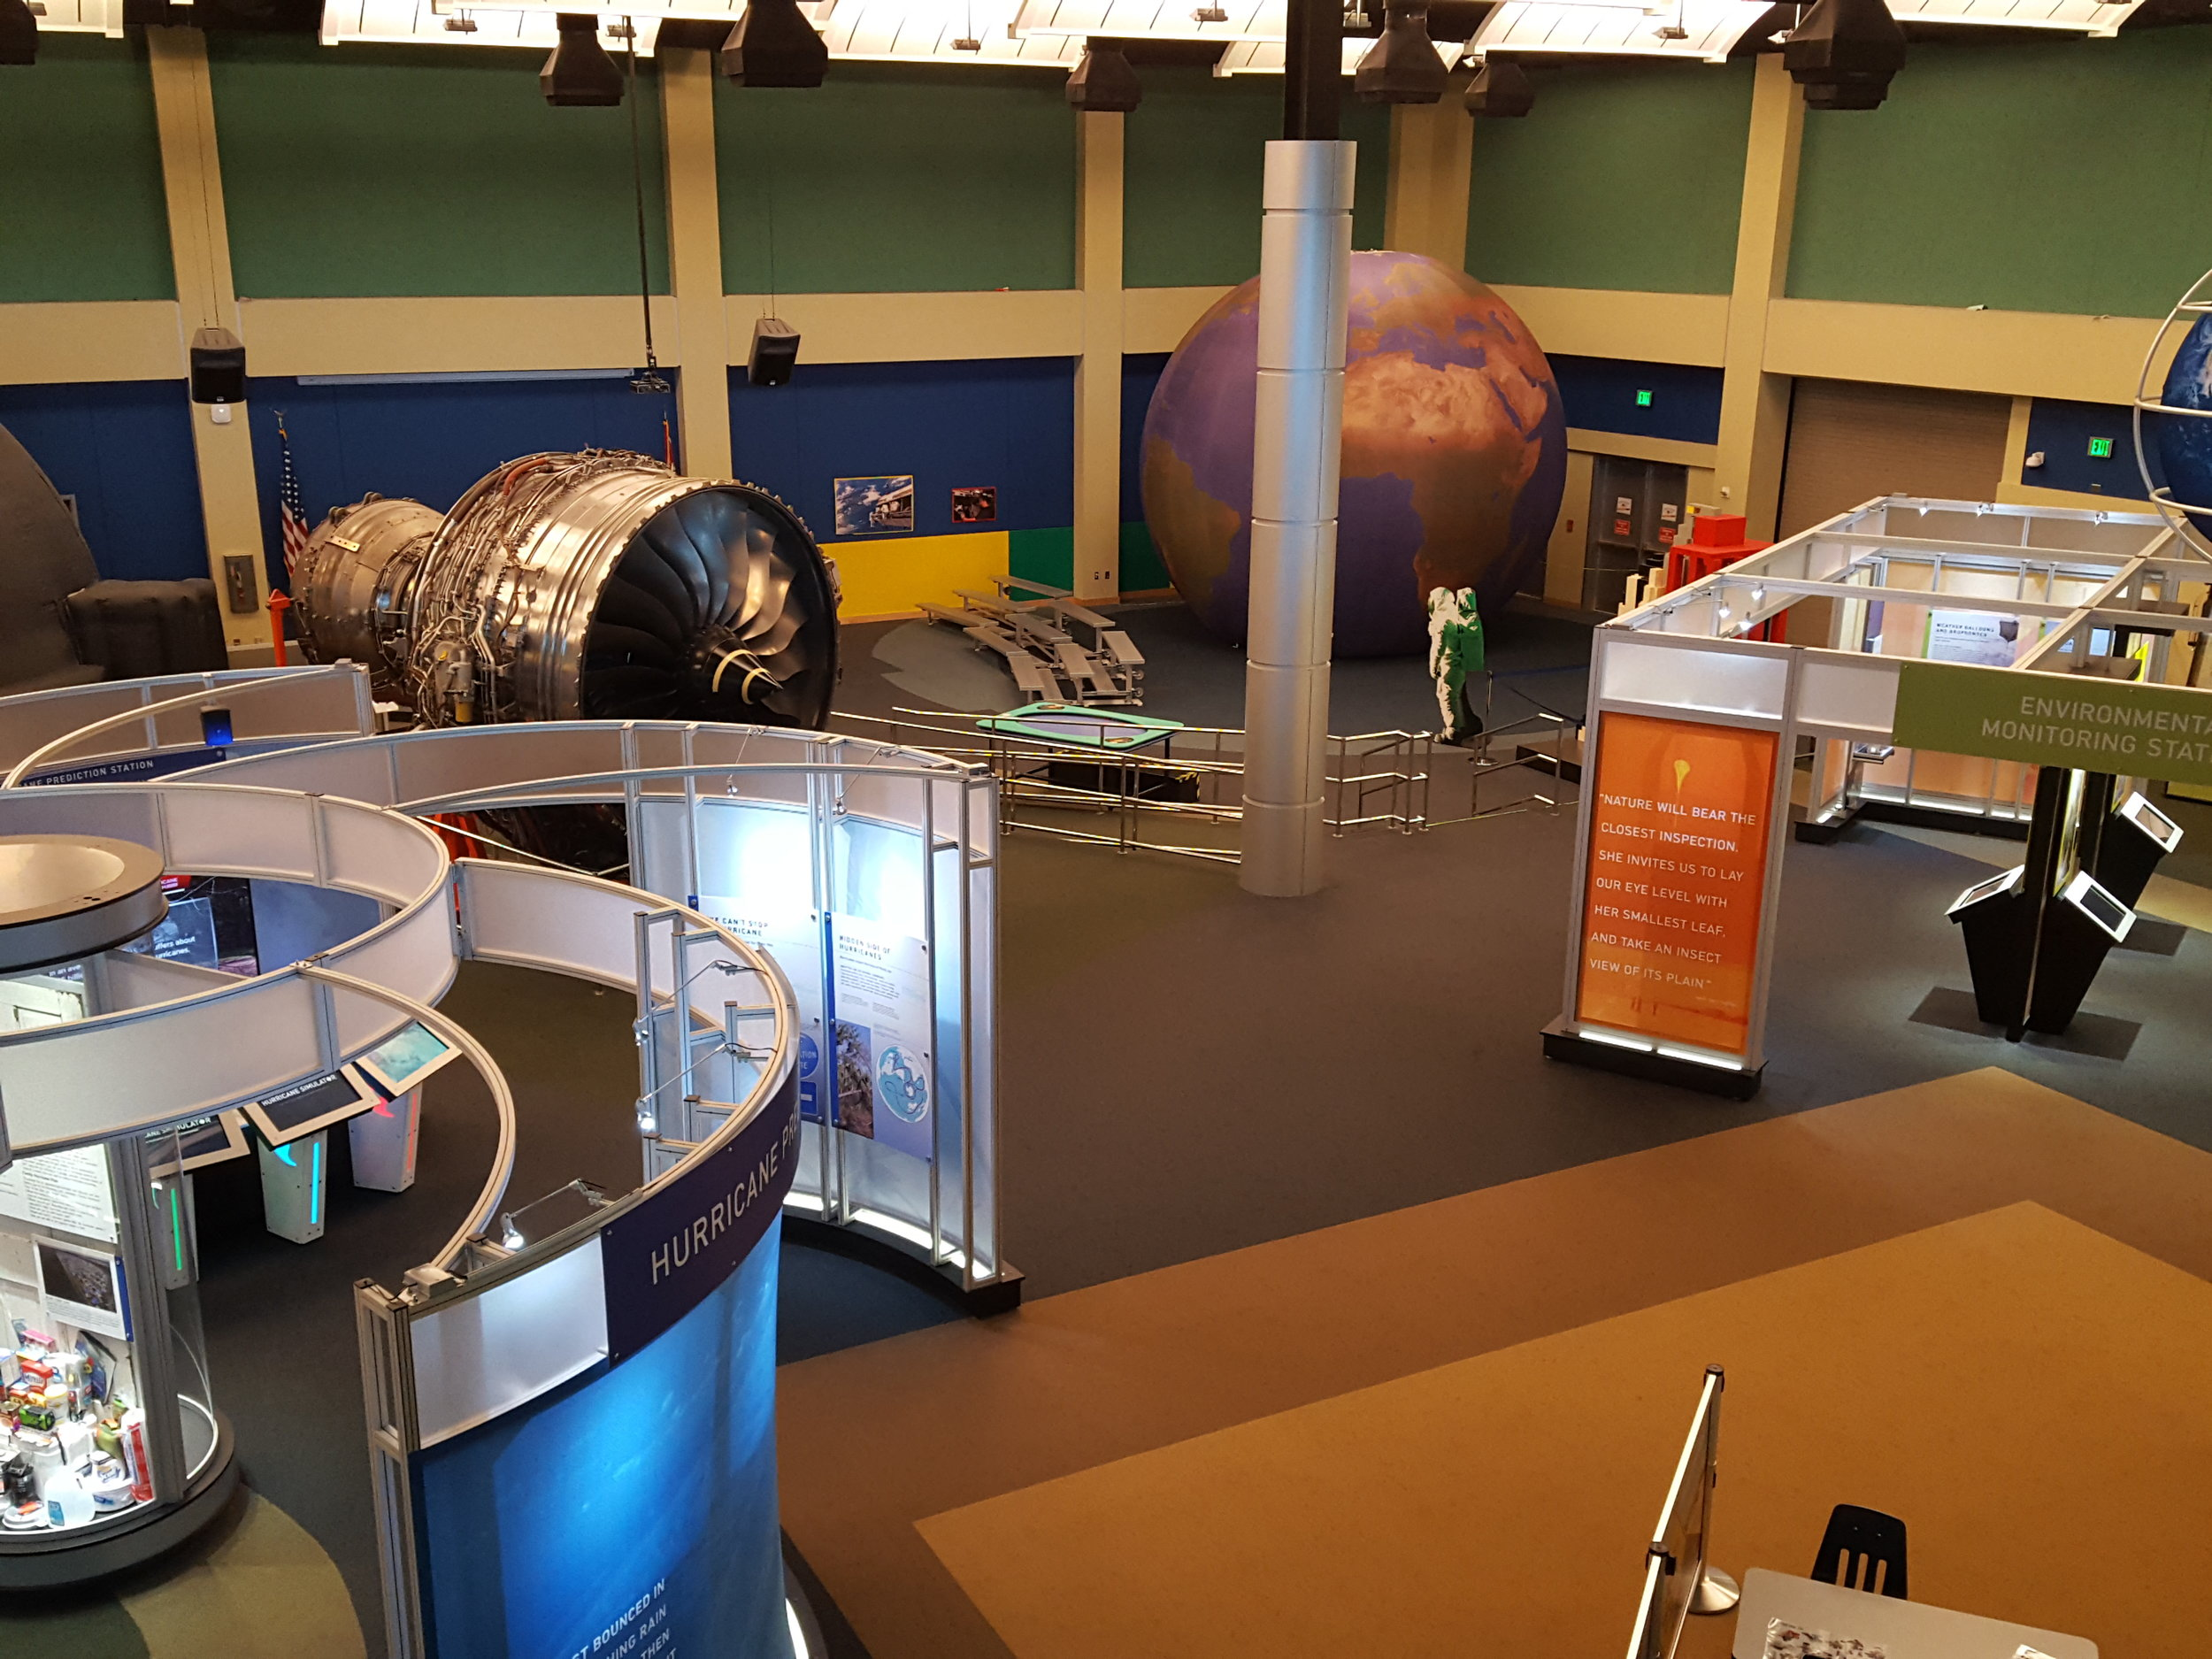 Main floor exhibits including a hurricane weather exhibit, a rocket engine, buoy research and a giant blow up replica of Earth!